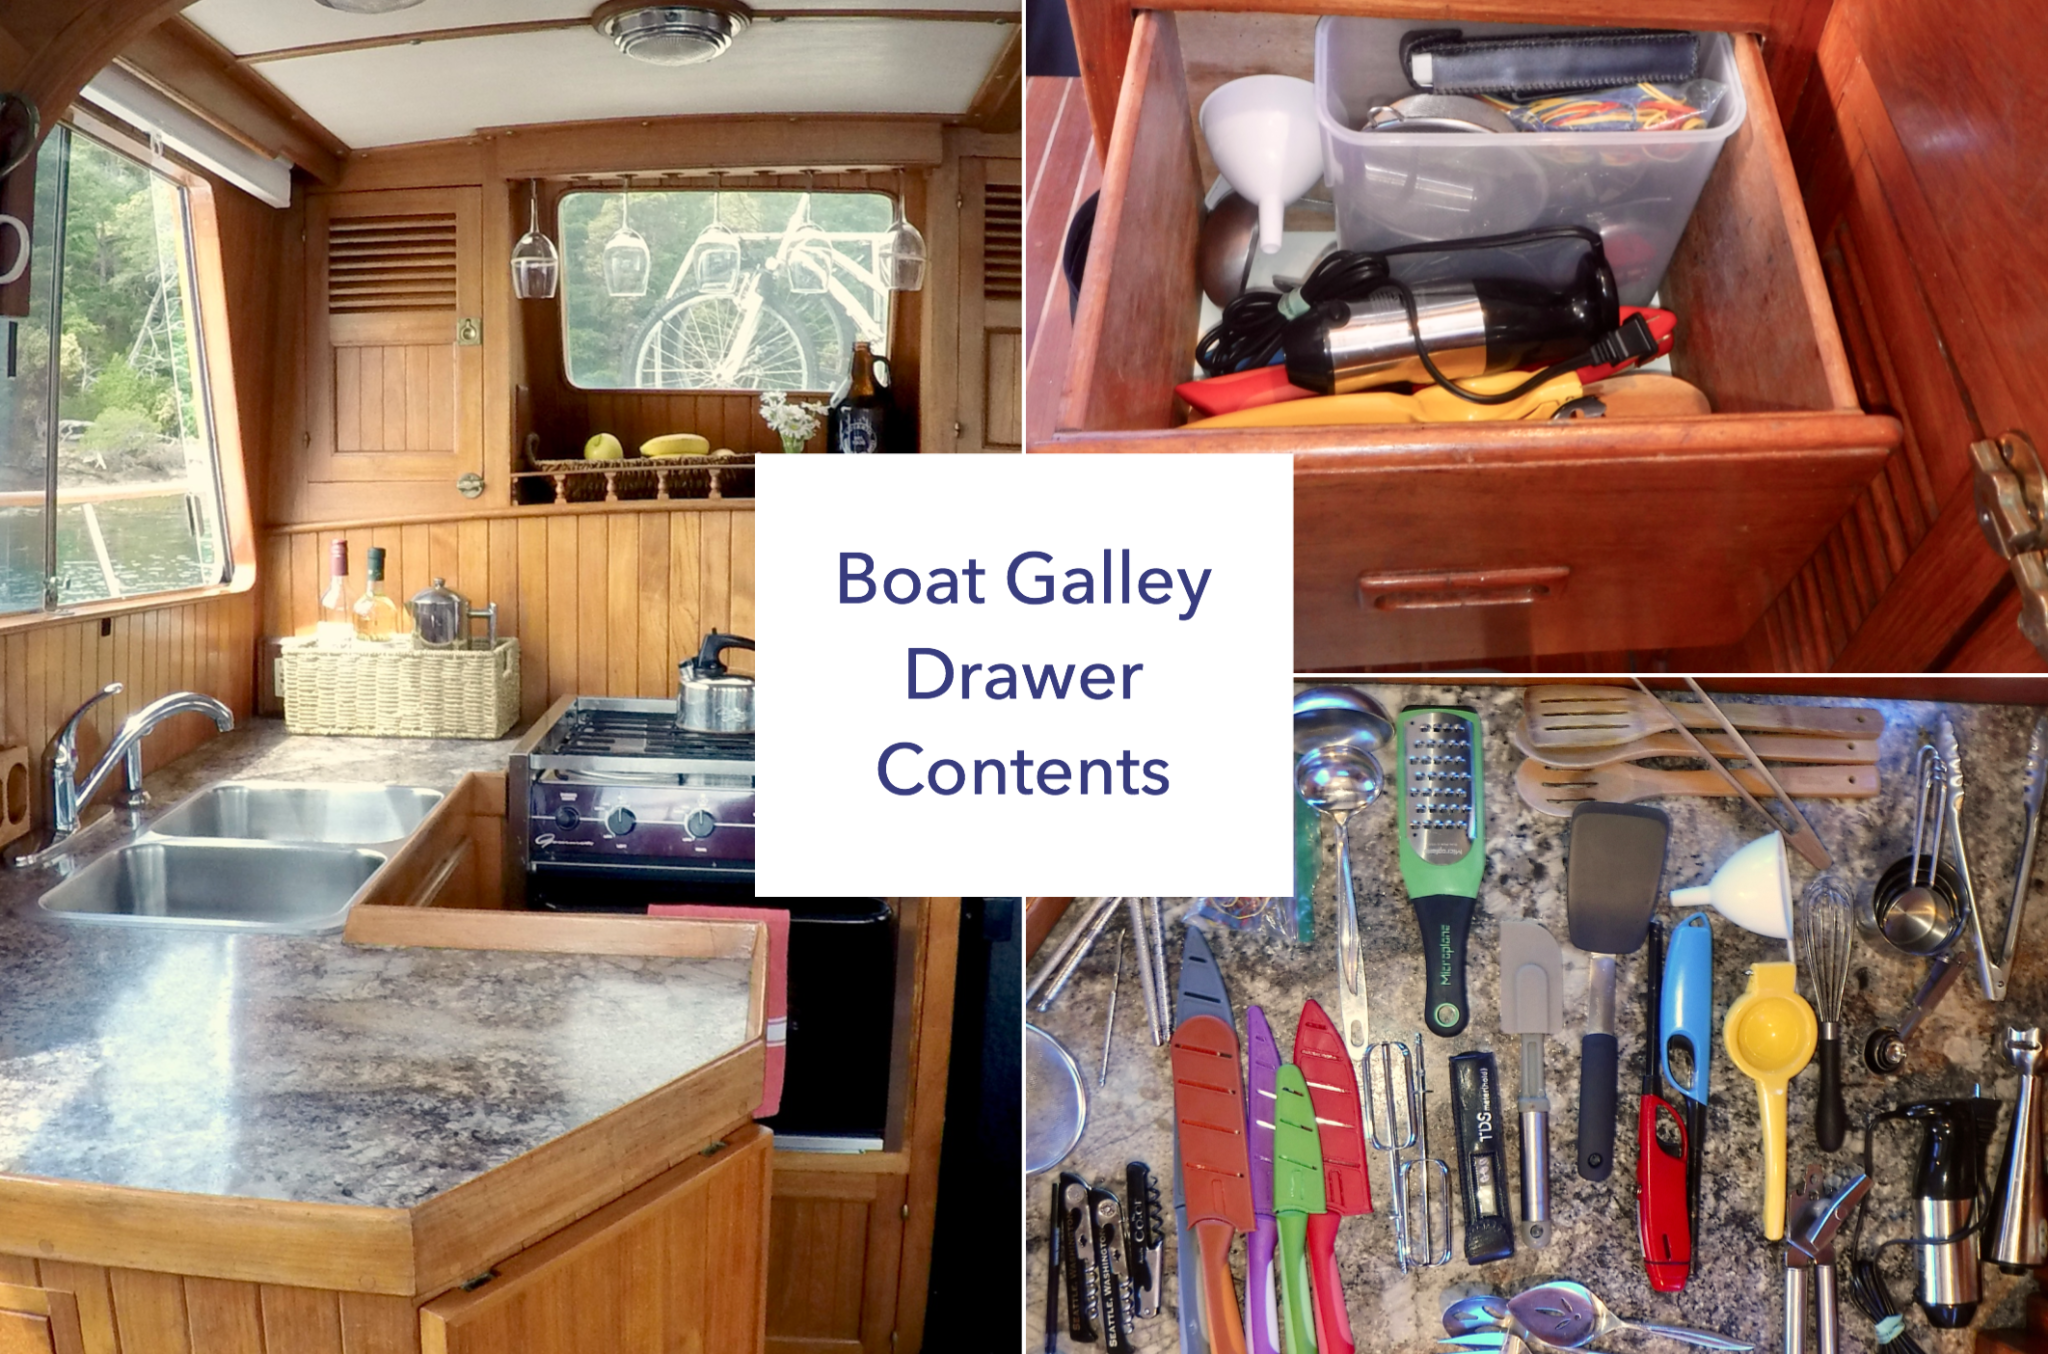 The Boat Galley Drawer Organization How Do You Store Gear And Gadgets In A Boat Galley How To Or Kitchen Drawer Organization Boat Galley Kitchen Design Decor